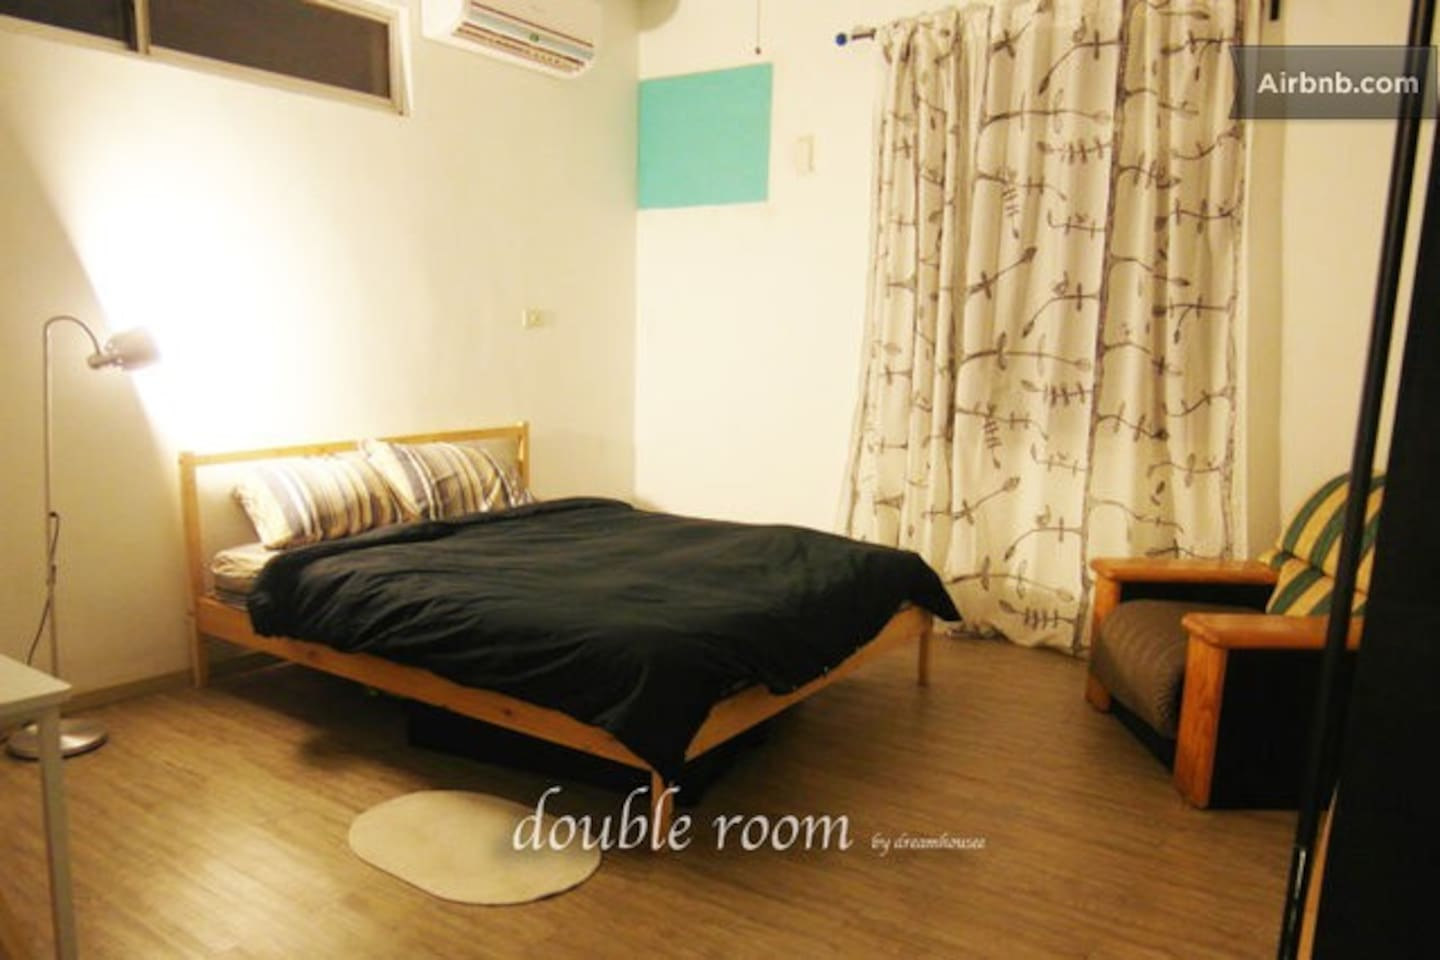 Big private room with double bed